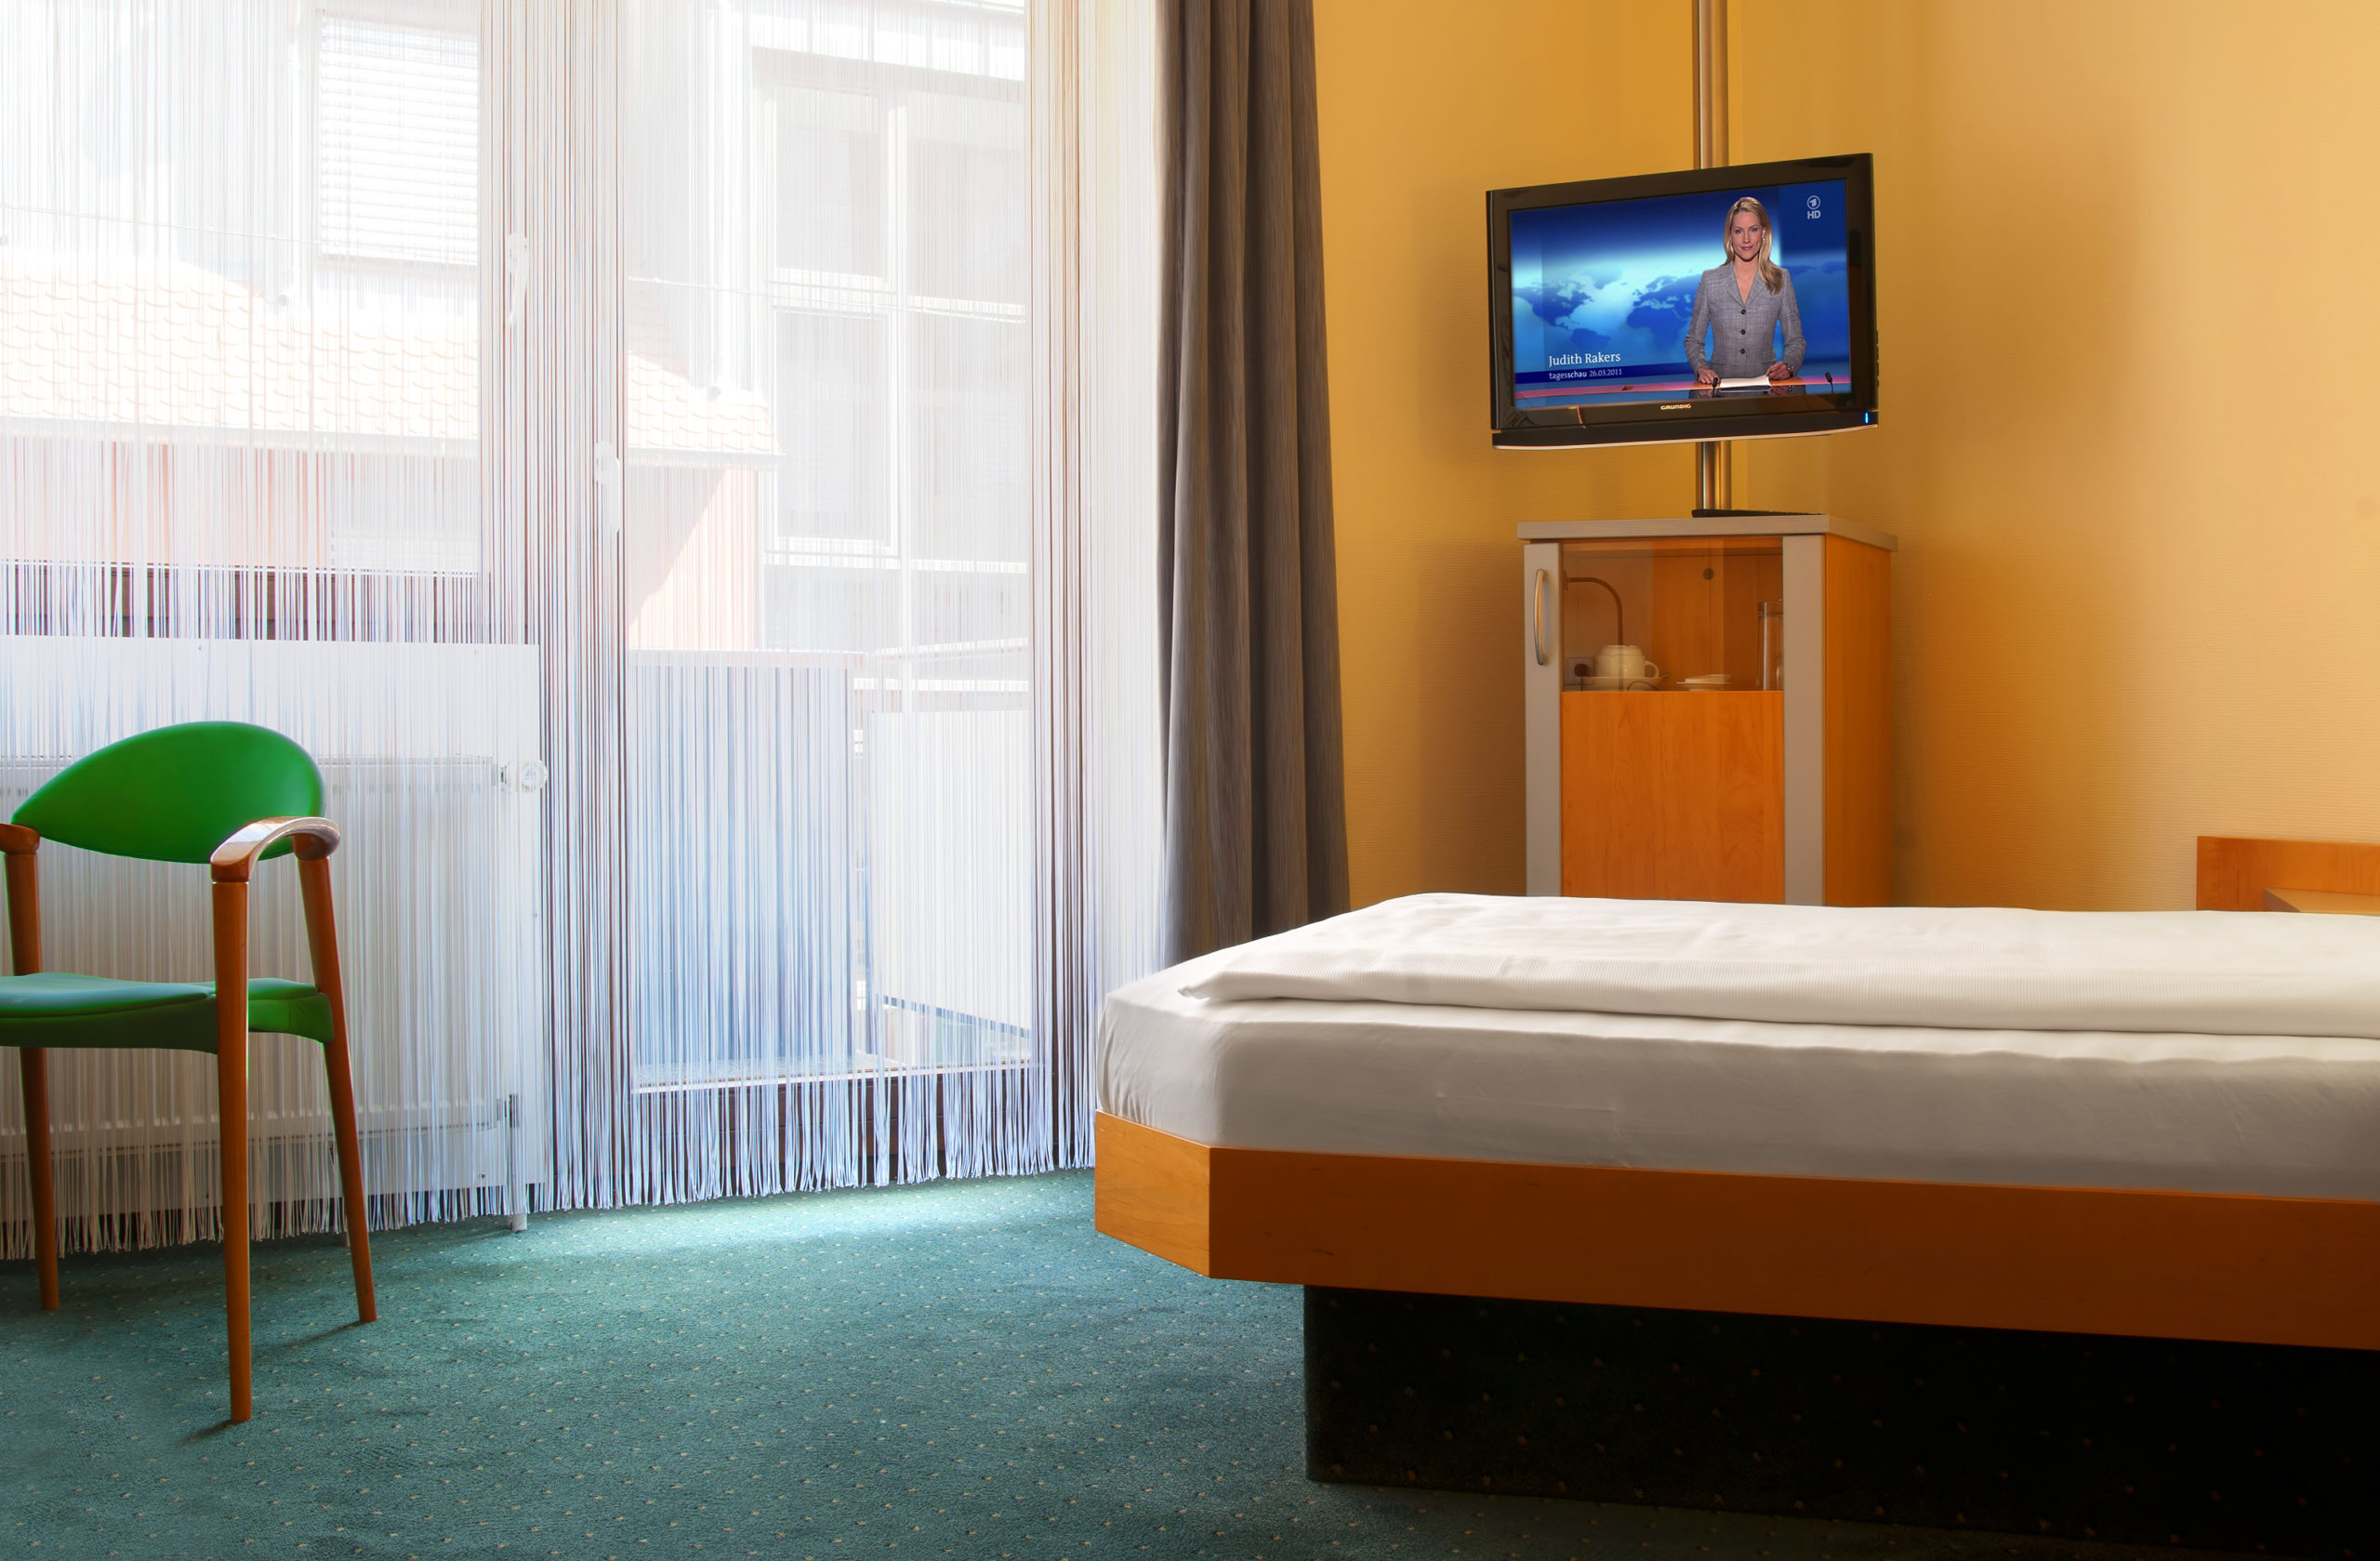 Hotel RIO Karlsruhe 4Sterne Businessclass